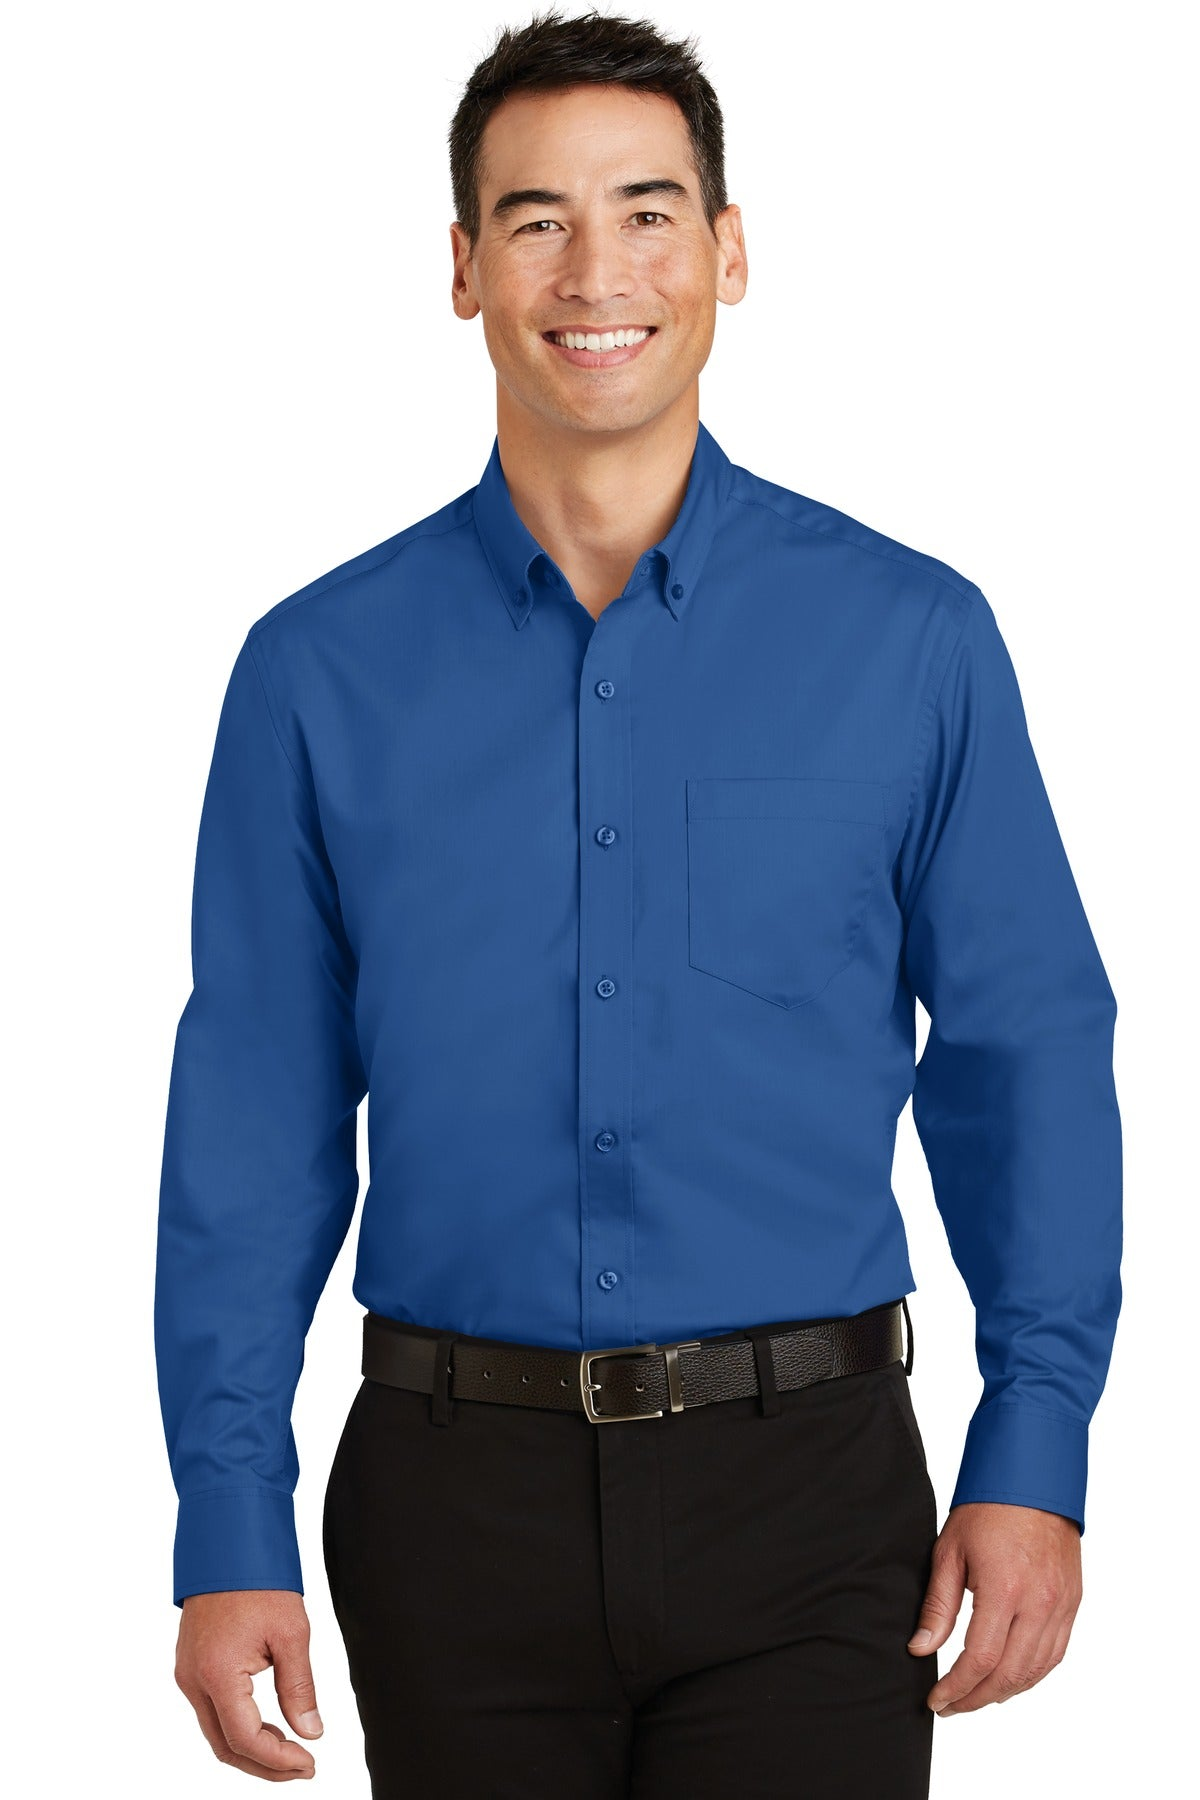 Ultramarine Blue Port Authority Tall Silk Touch Polo with Pocket.